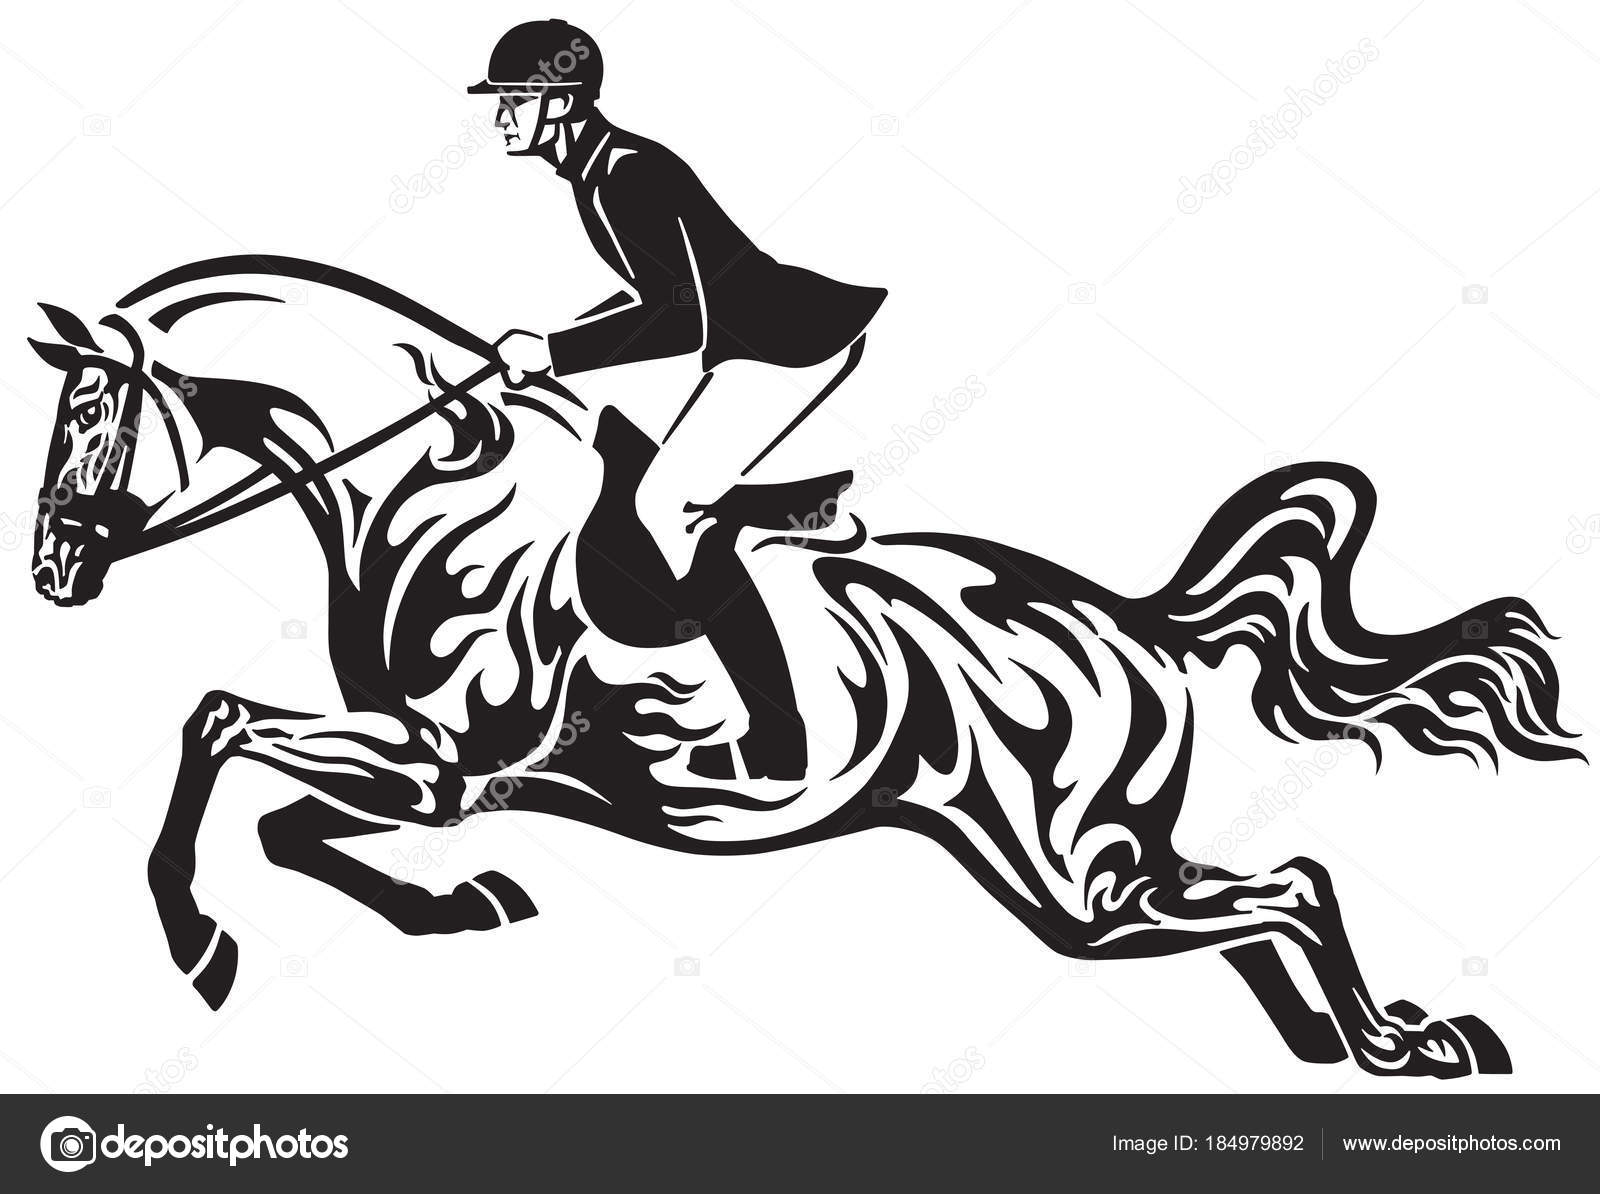 Horse Show Jumping Equestrian Sport Competition Horseman Rider Controls Horse Stock Vector C Insima 184979892